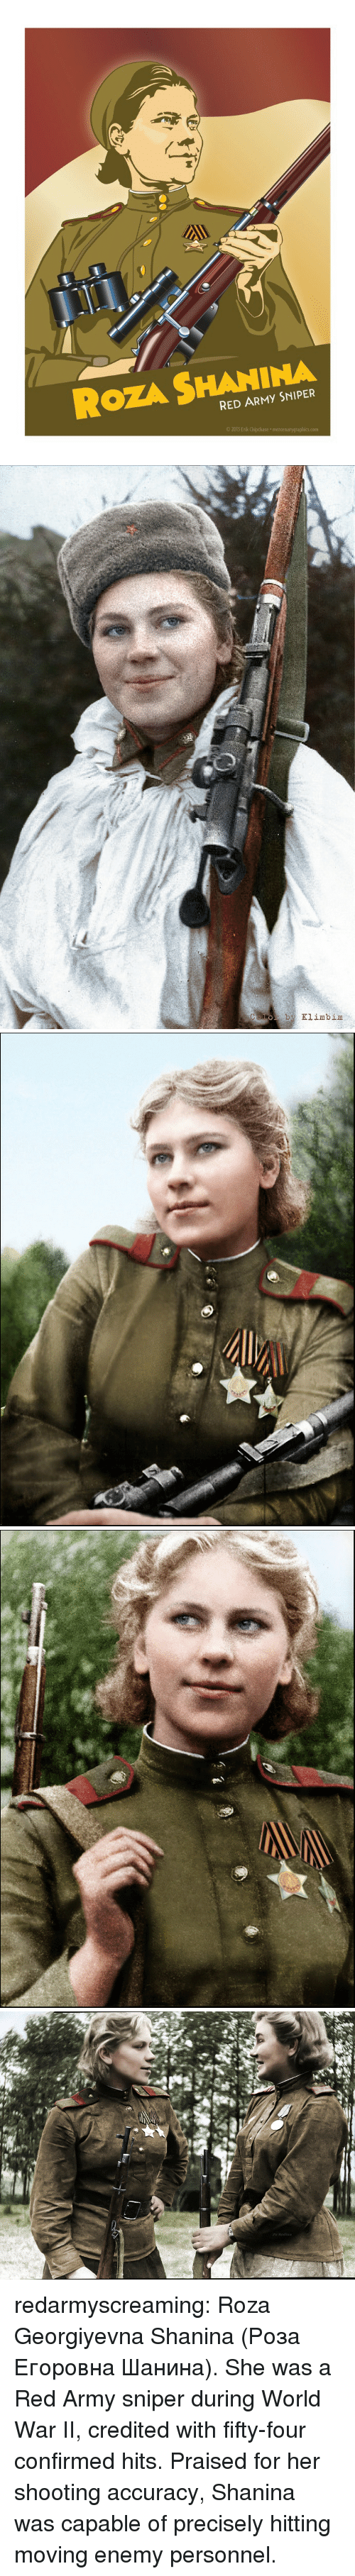 Tumblr, Army, and Blog: ROZA SHANINA  RED ARMY SNIPER  2013 Erik Chipchase   Za Rodimm redarmyscreaming:  Roza Georgiyevna Shanina (Роза Егоровна Шанина). She was a Red Army  sniper during World War II, credited with fifty-four confirmed hits.  Praised for her shooting accuracy, Shanina was capable of precisely  hitting moving enemy personnel.